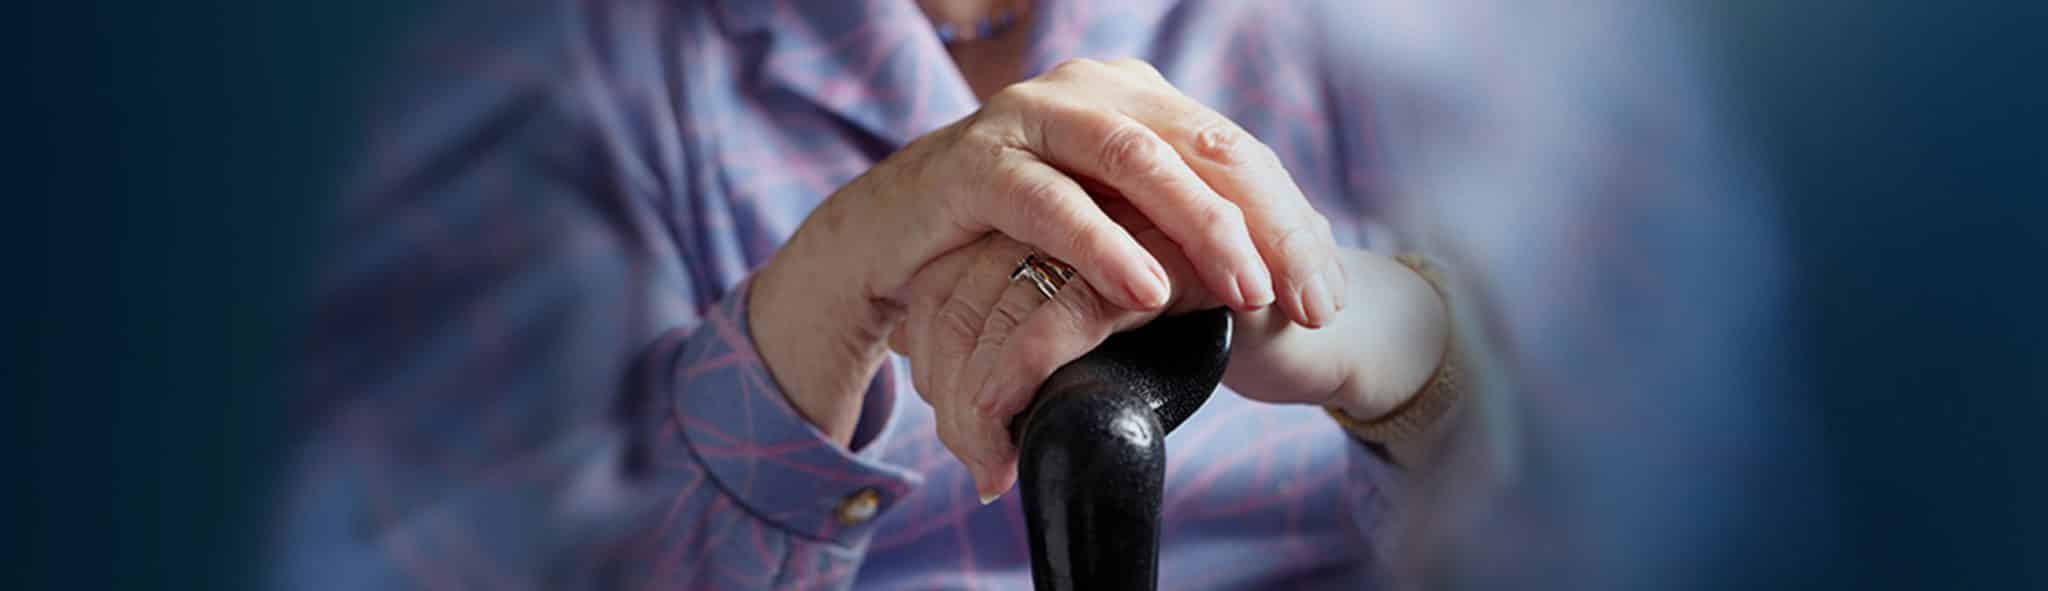 HSH Acting as Lead Counsel in Nursing Home Negligence Lawsuits